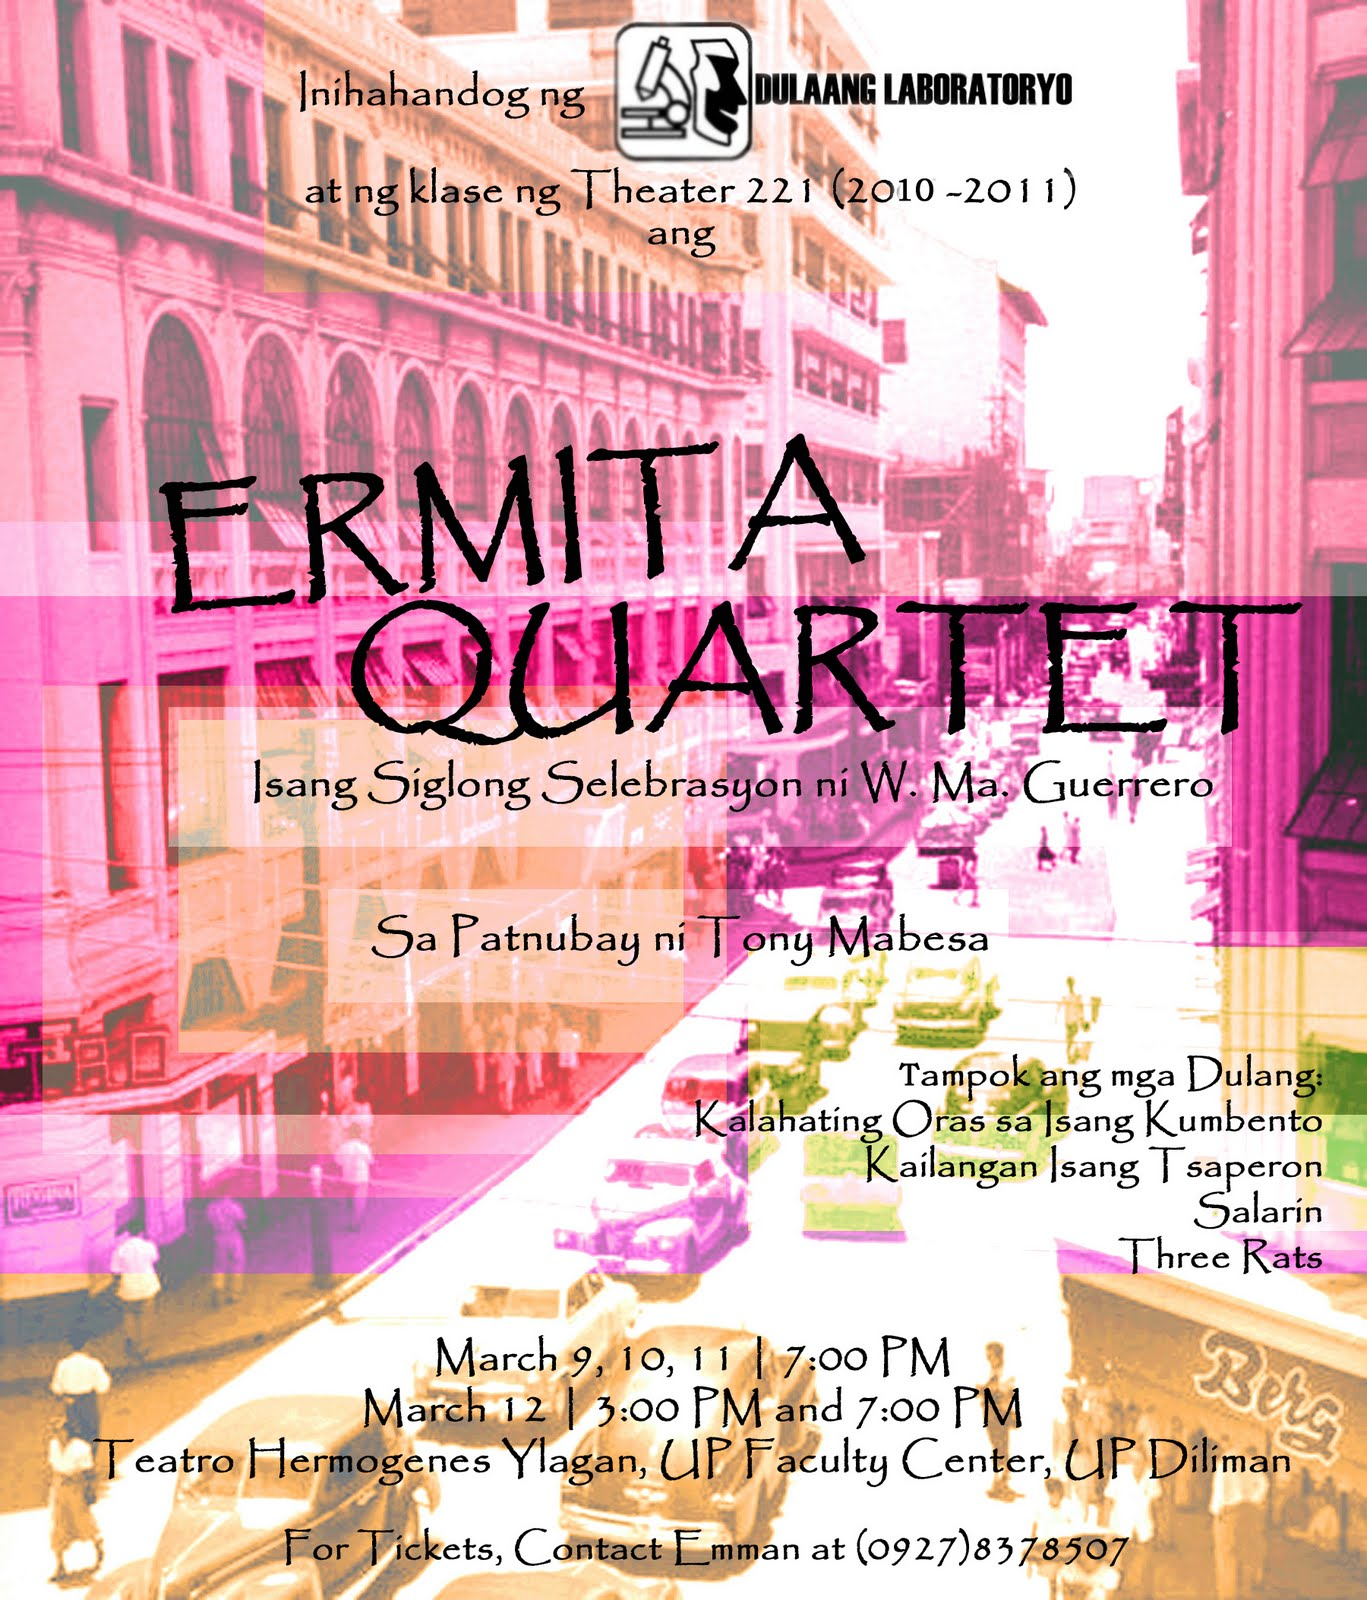 the summary of the three rats by wilfrido guerero http://gibbscadiz.blogspot.com/2011/03/ermita-quartet-four-one-act-plays-by.html